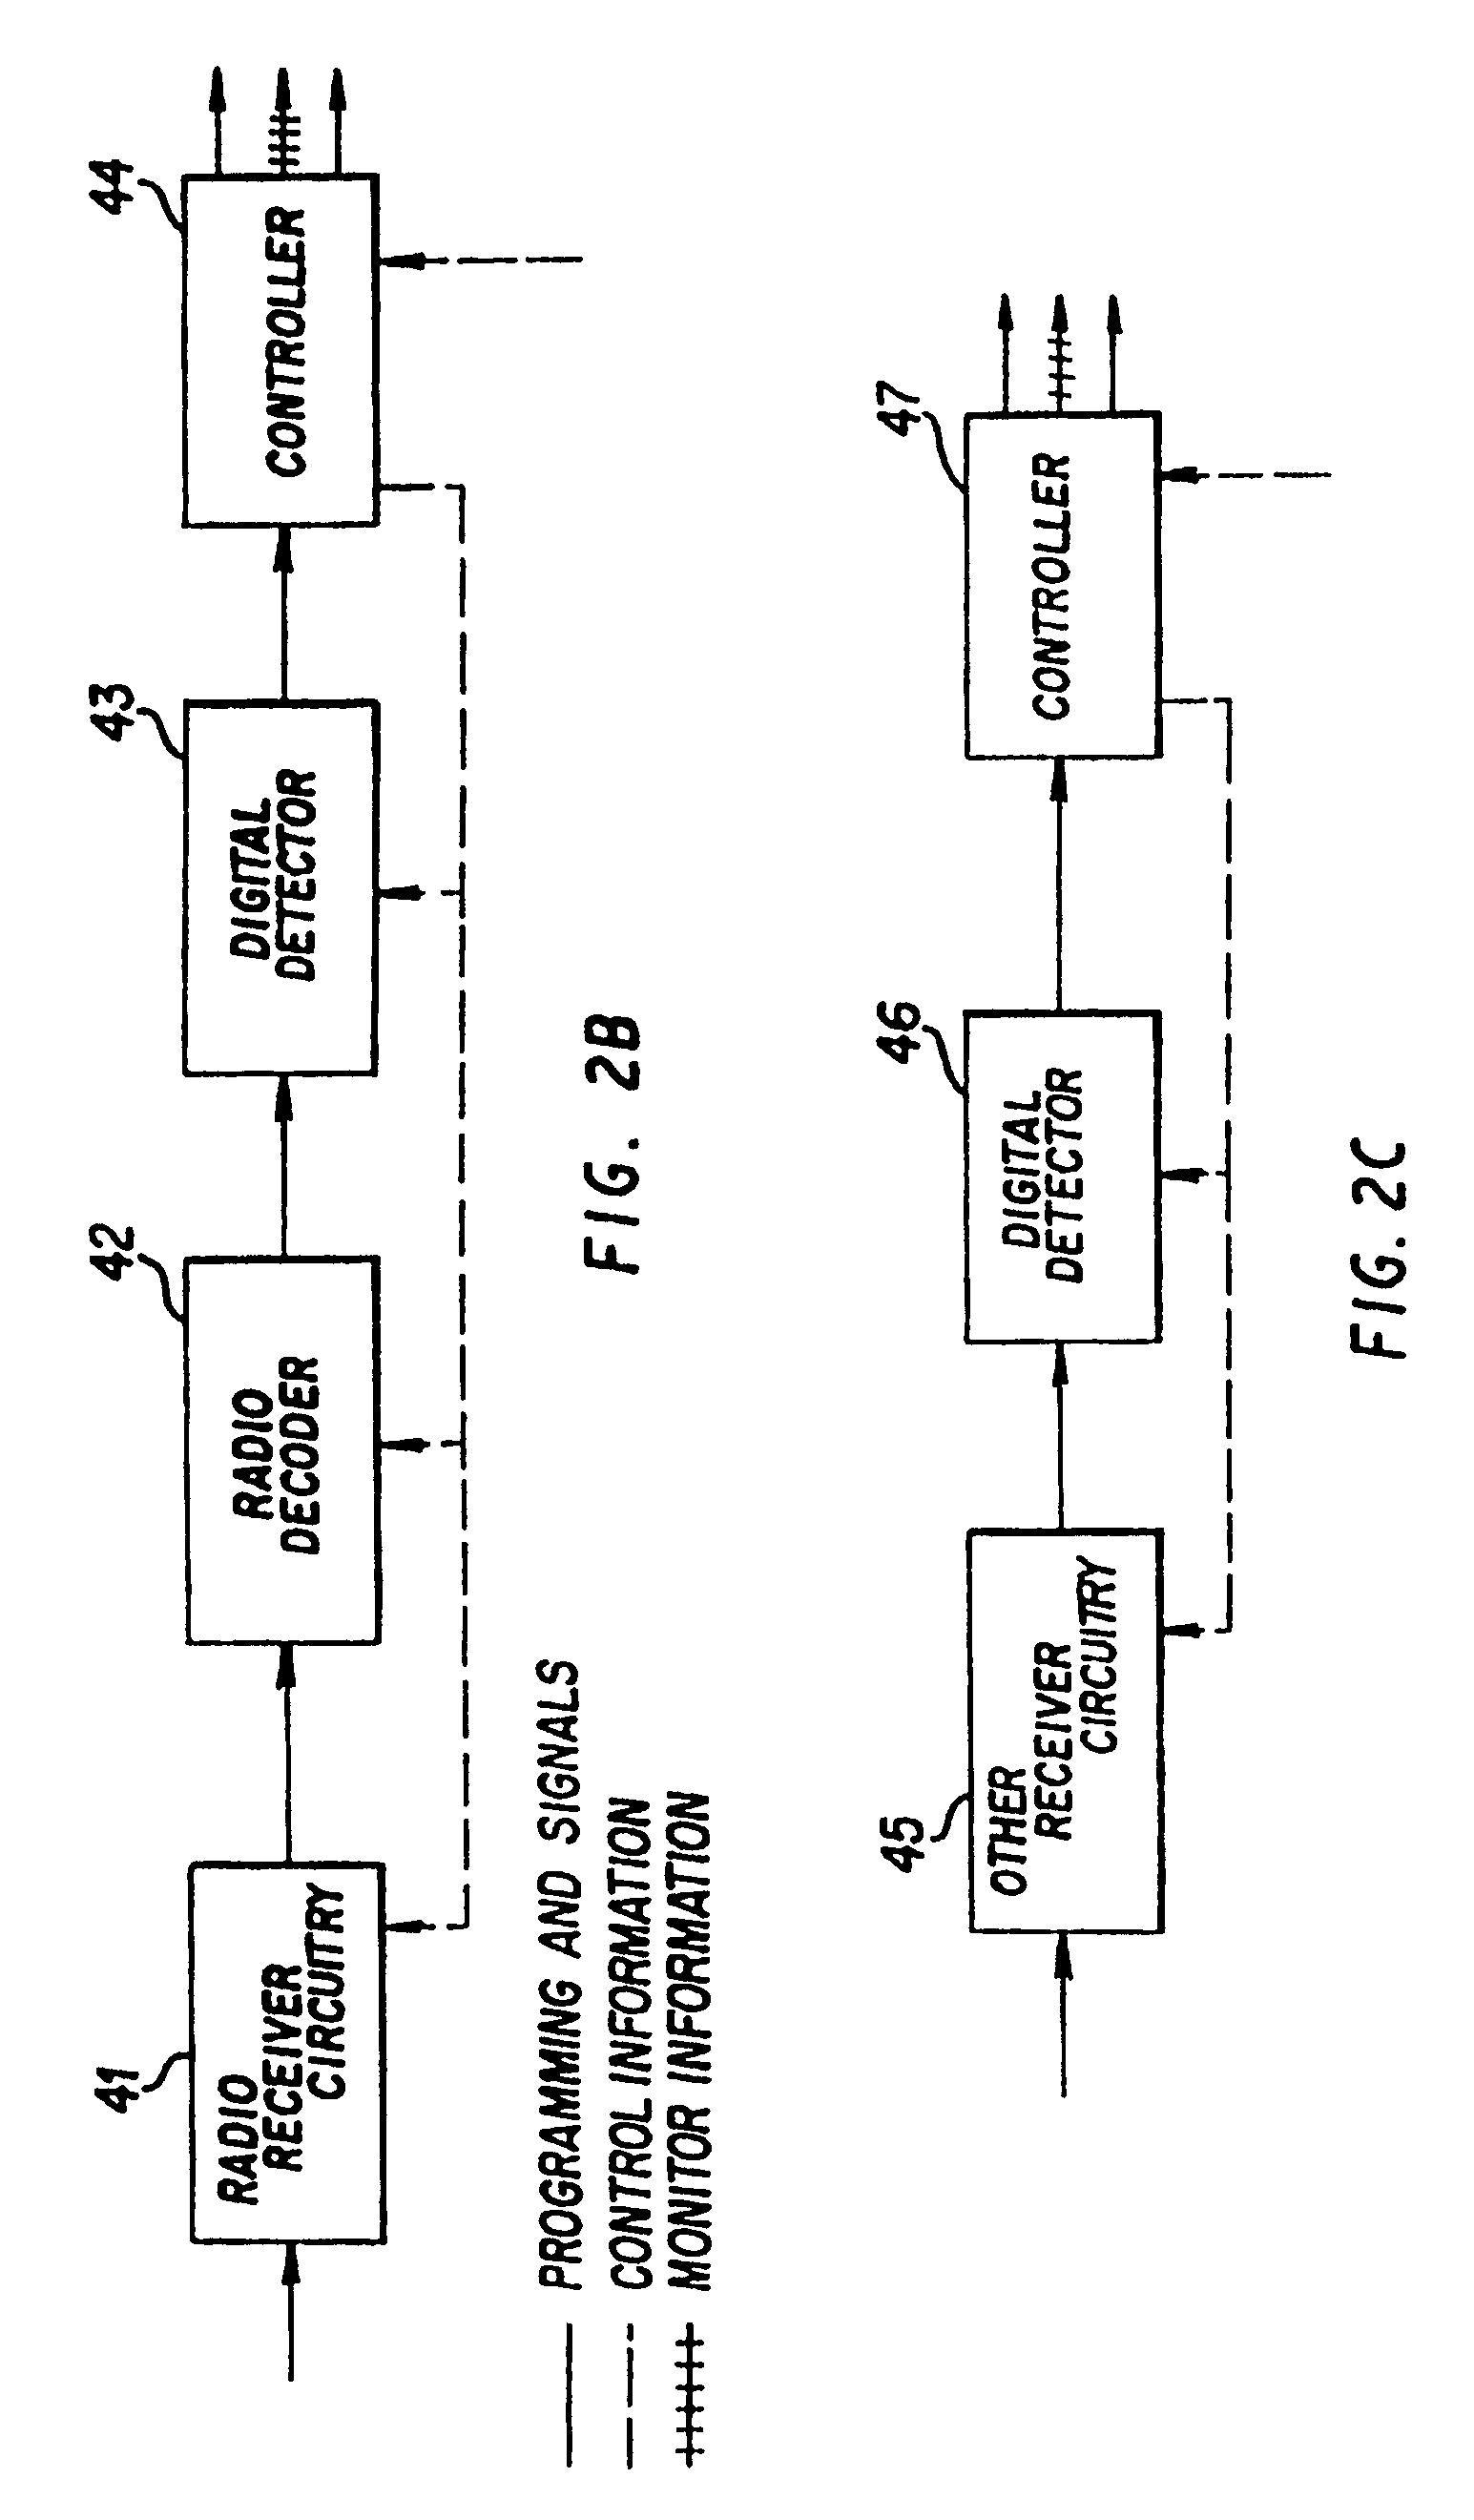 Us7992169b1 Signal Processing Apparatus And Methods Google Patents Promotional Gold Detector Circuit Buy Promotion